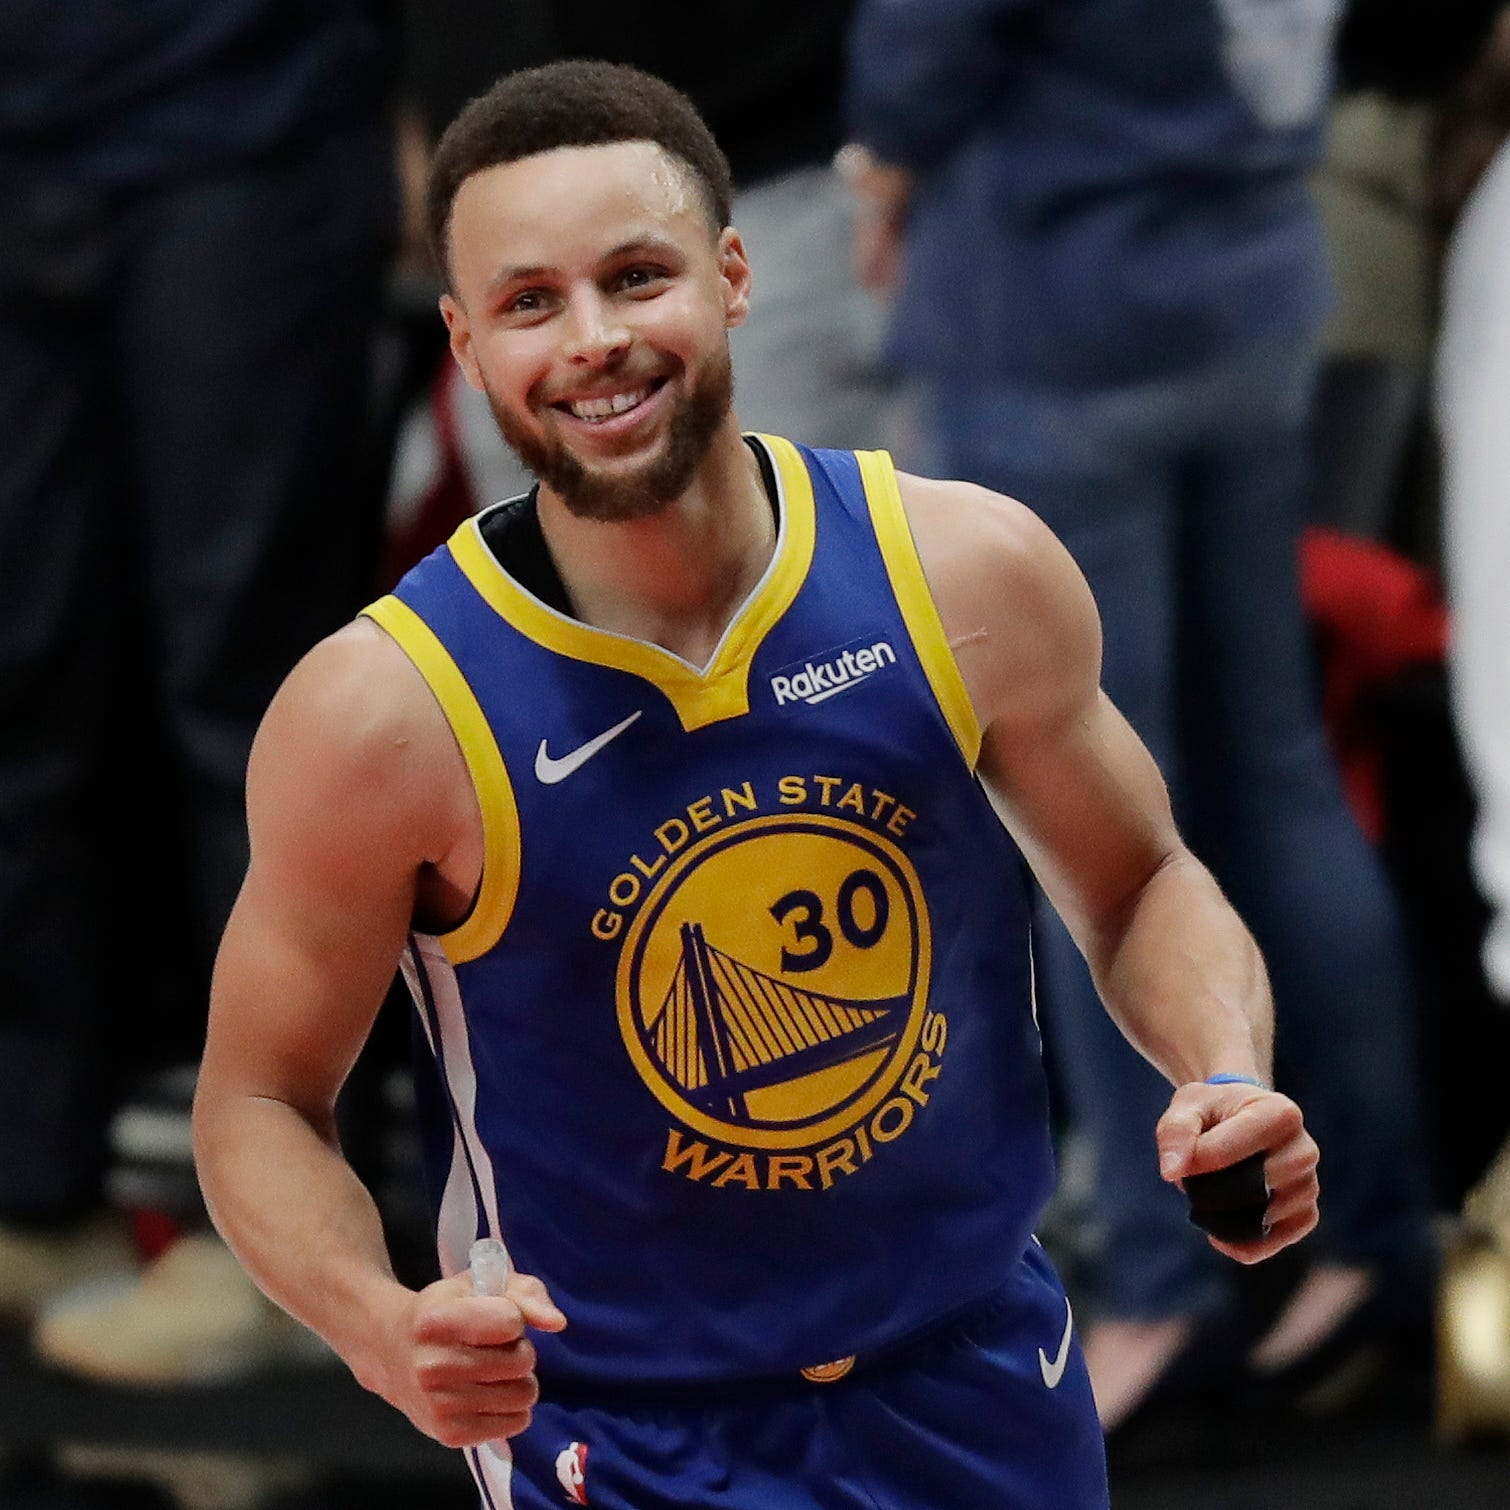 Monday's NBA playoffs: MSU's Draymond Green, Steph Curry send Warriors to fifth straight finals appearance